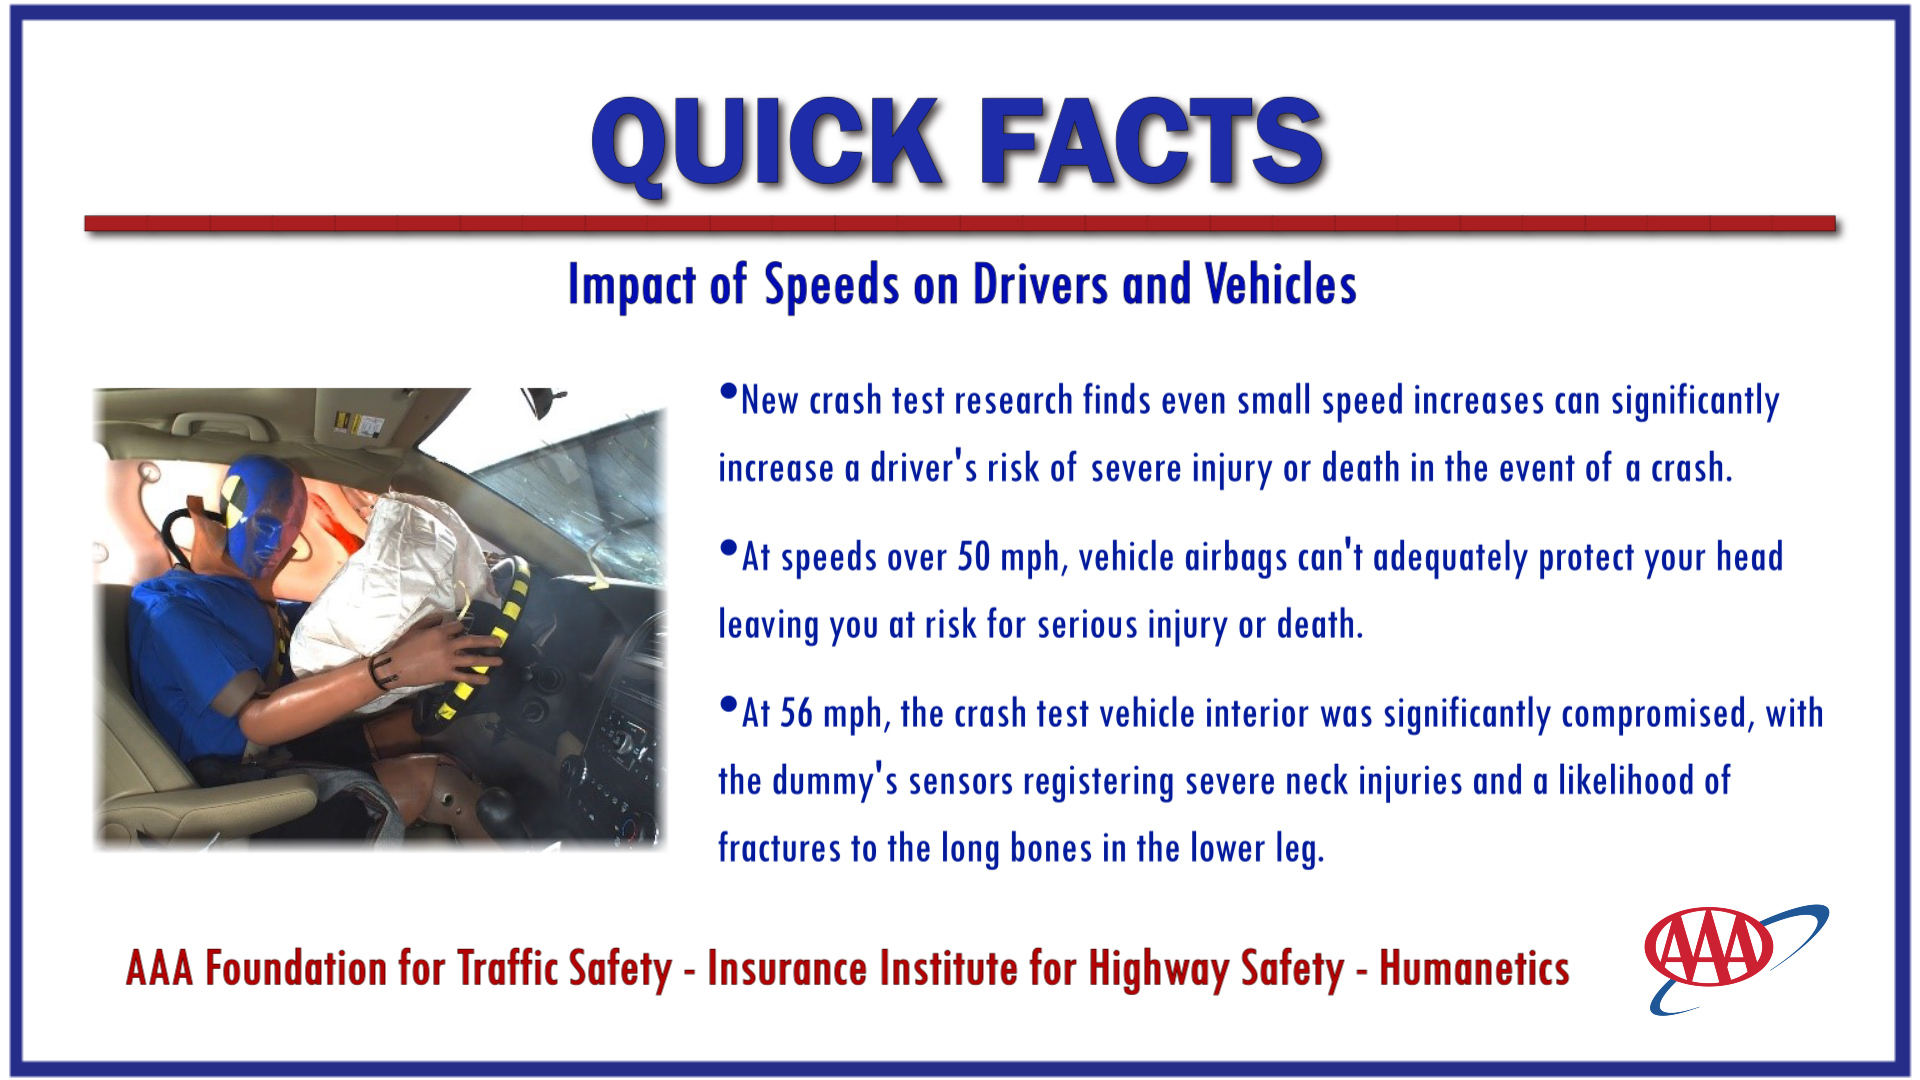 AAA QUICK FACTS_Speed and Injury Crash Test